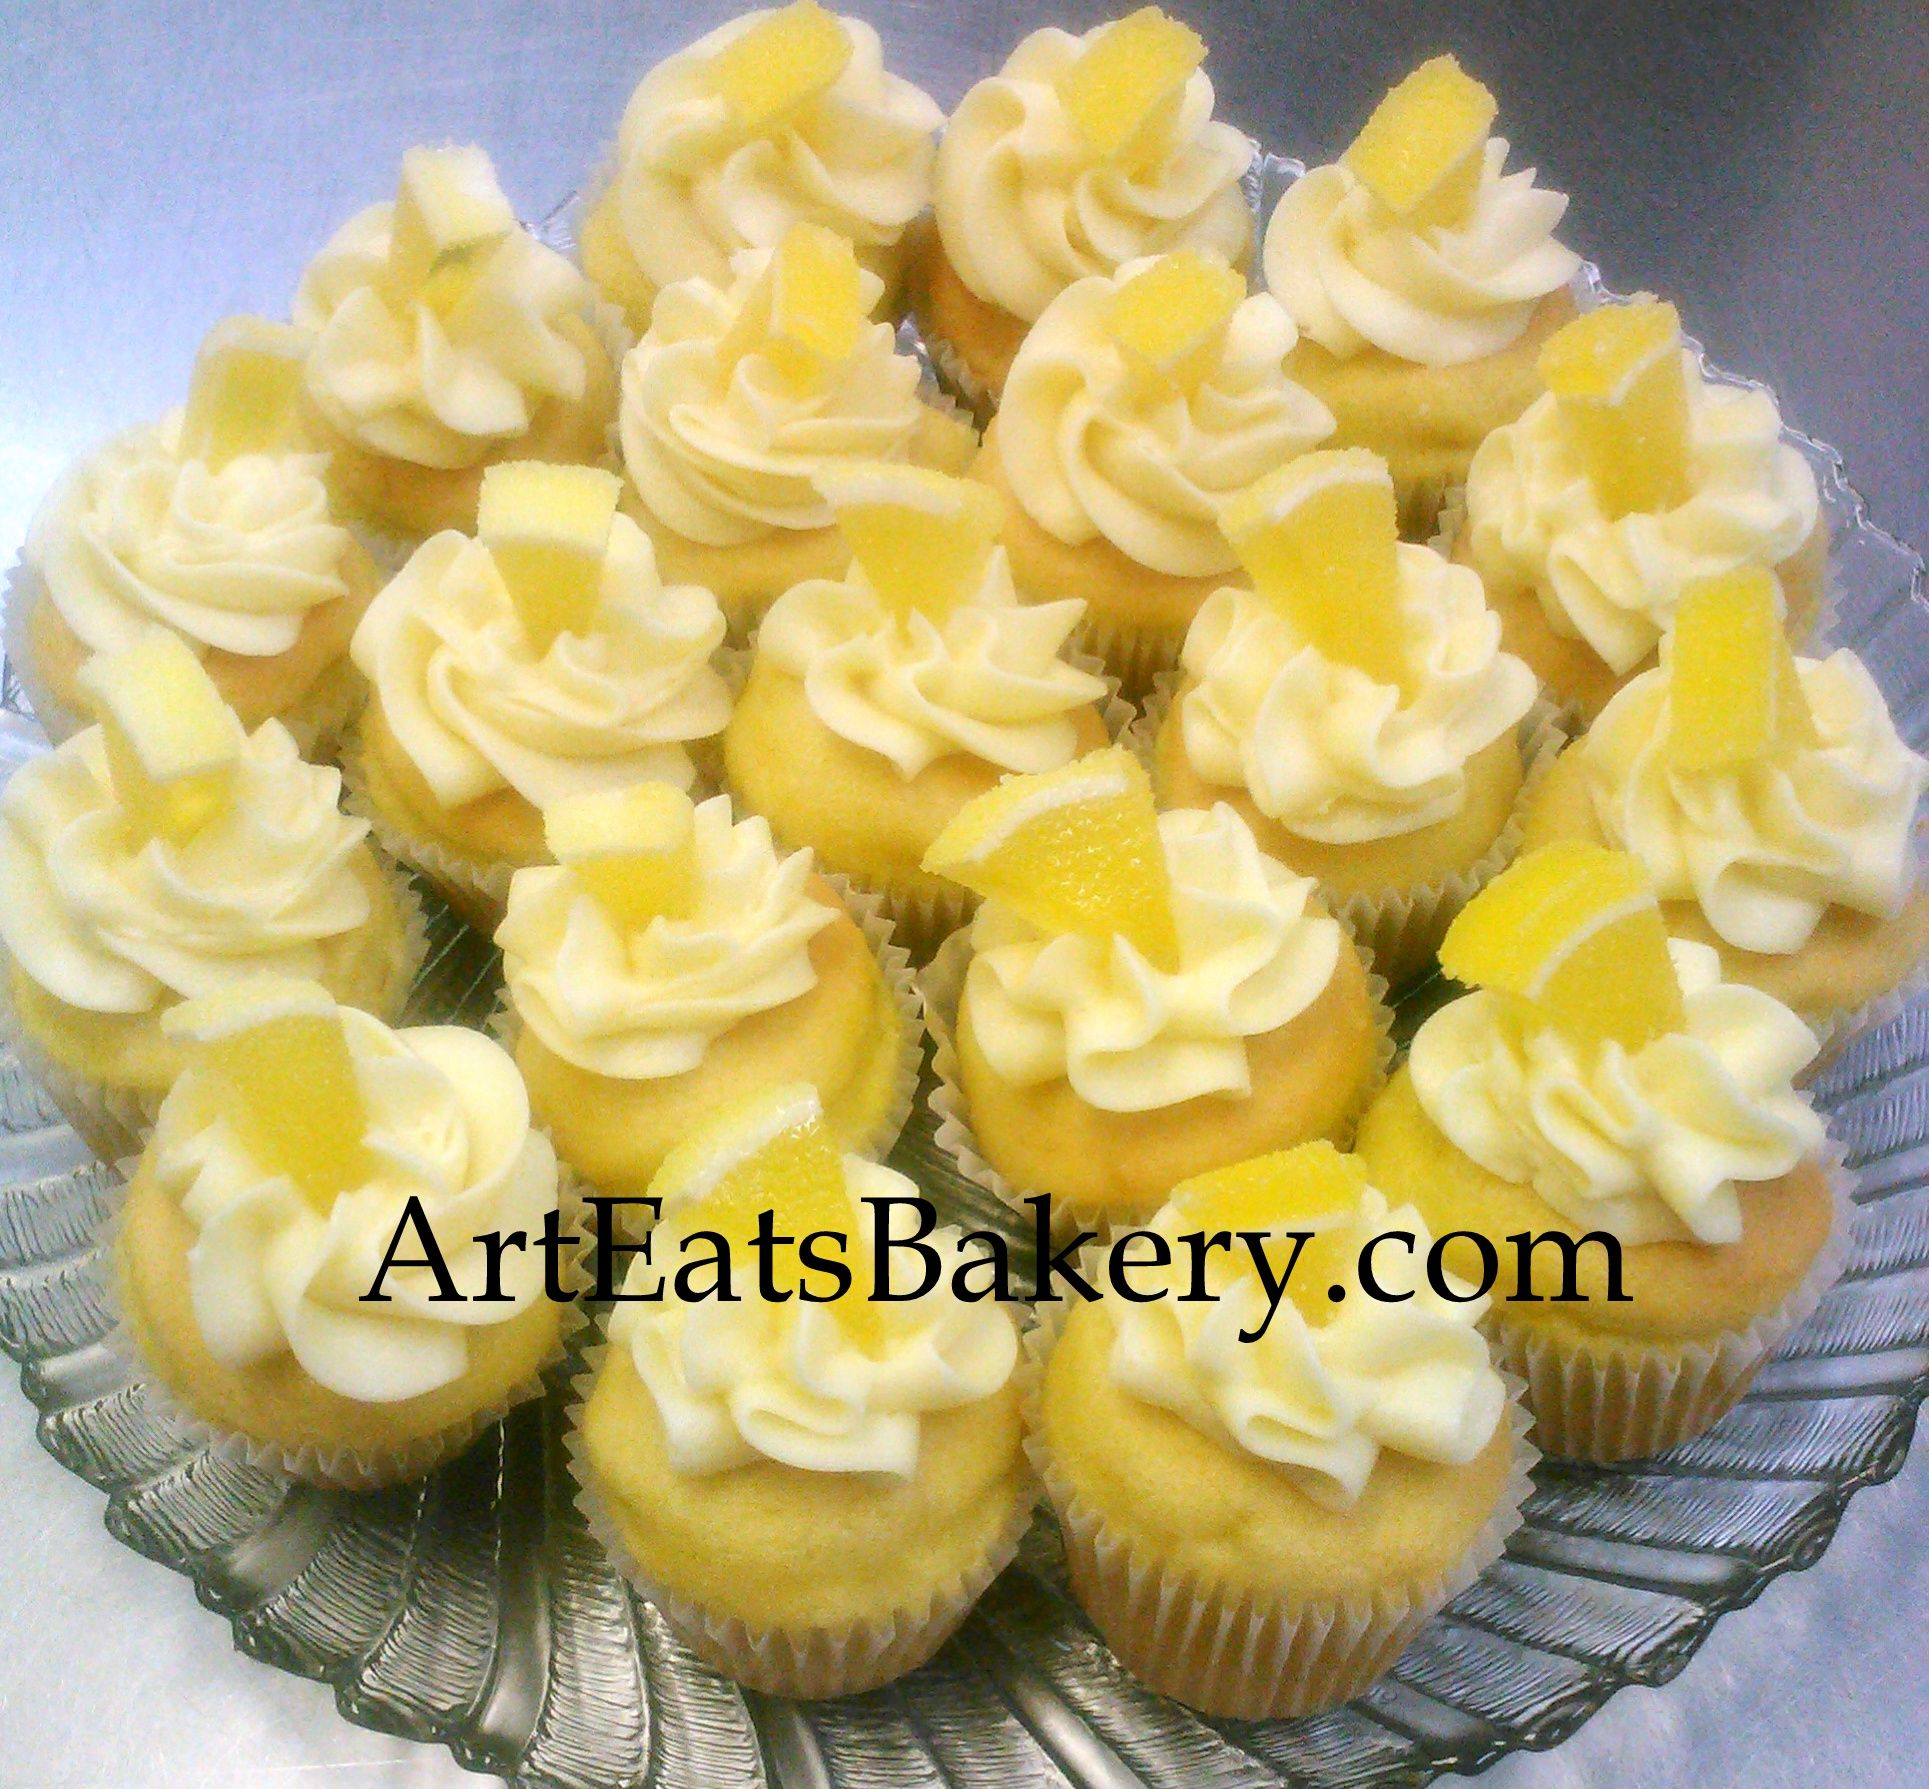 Art Eats Bakery 1626 East North Street, Greenville, SC 29607https ...